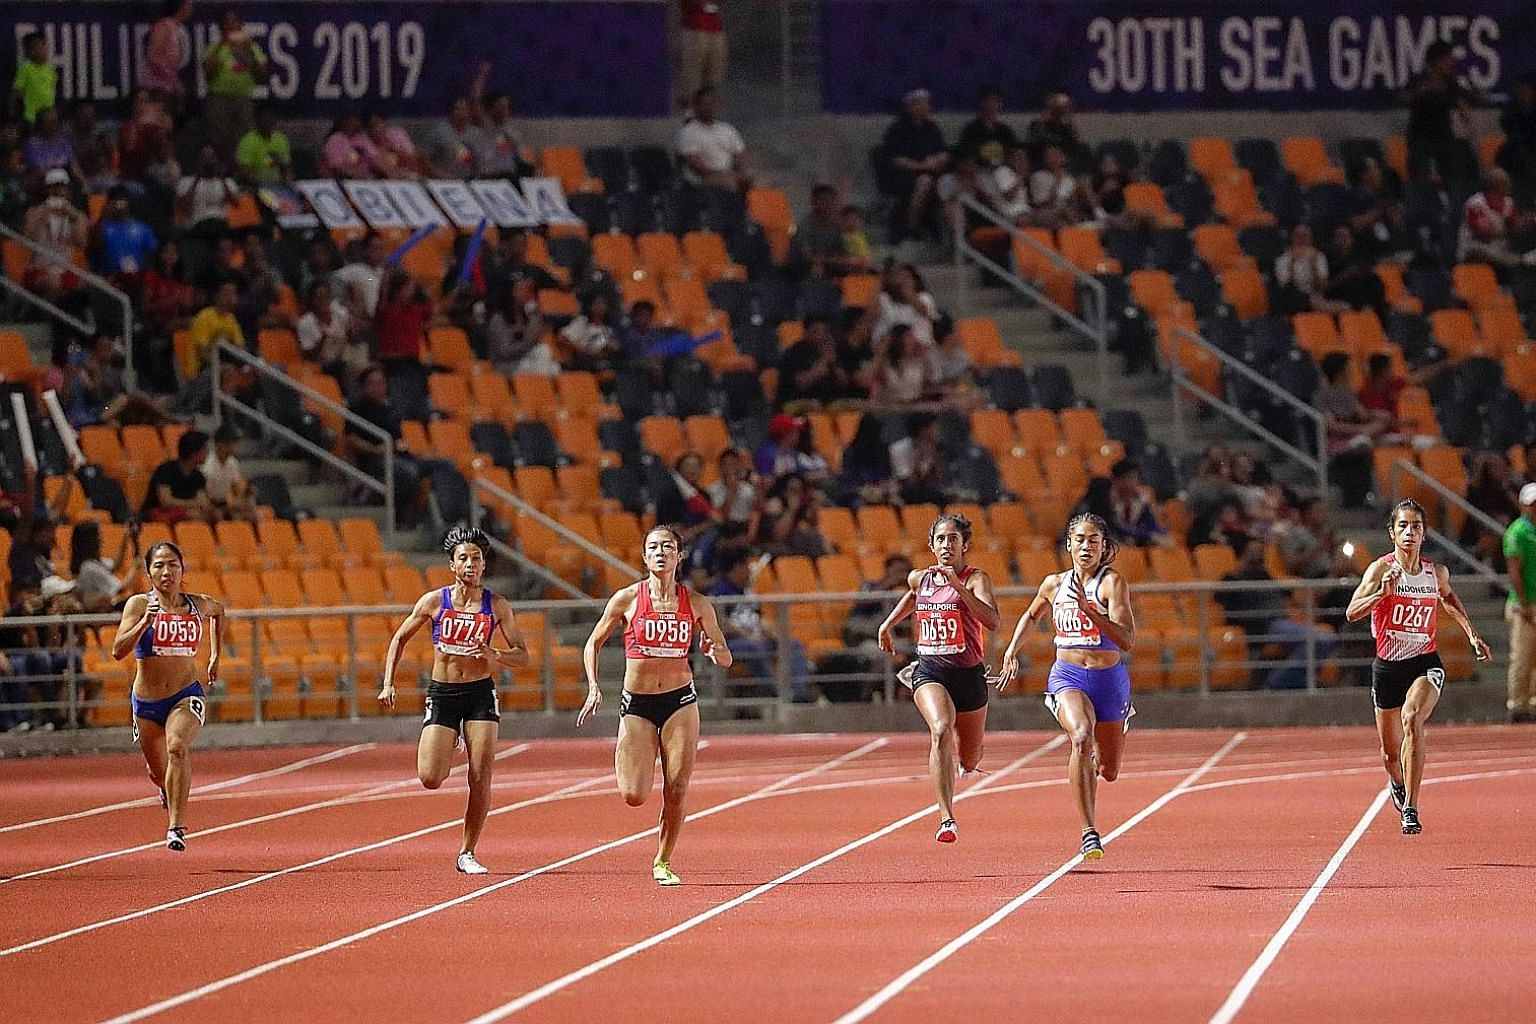 Shanti Pereira (third from right) finishing third in the SEA Games 200m final, earning one of Singapore's three bronzes in athletics. The result was a far cry from the two golds, two silvers and four bronzes in 2017.